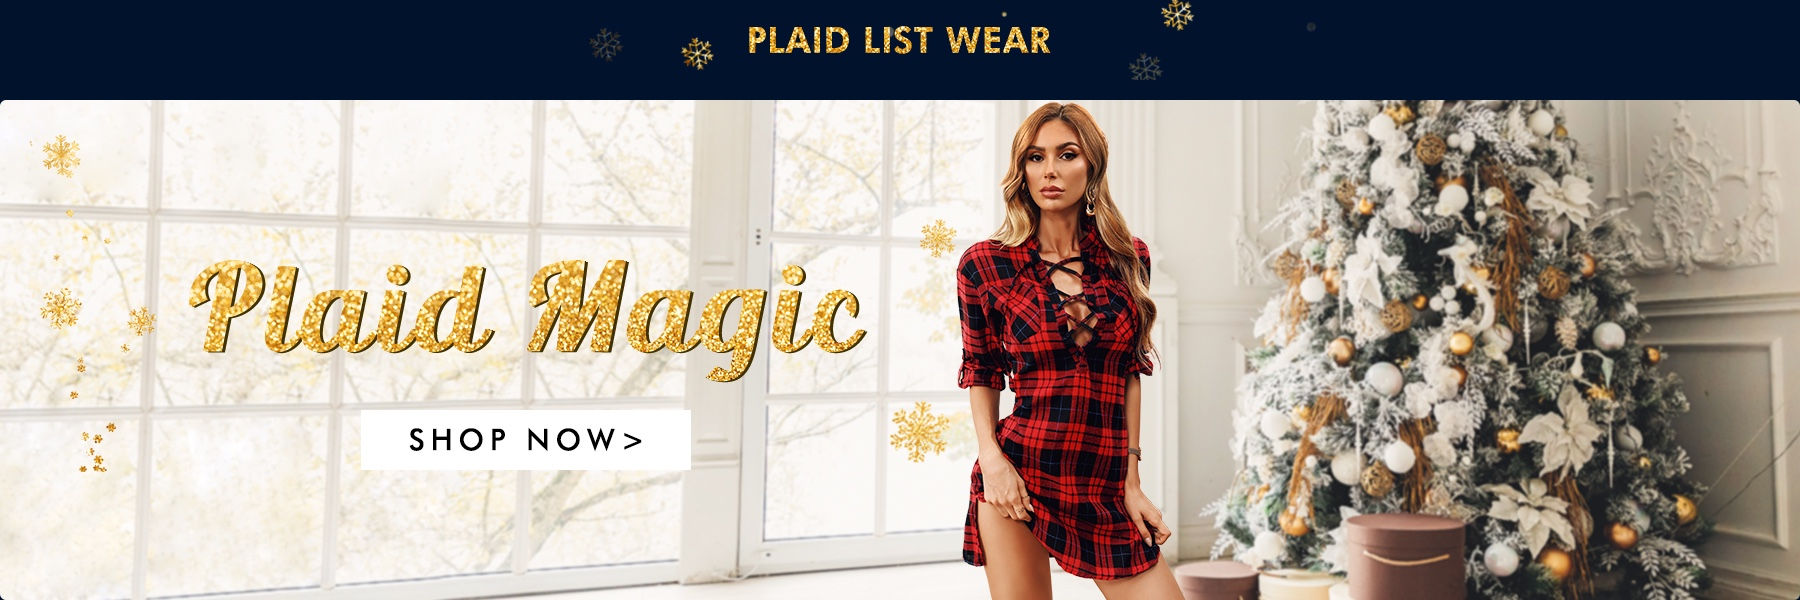 Plaid list wear